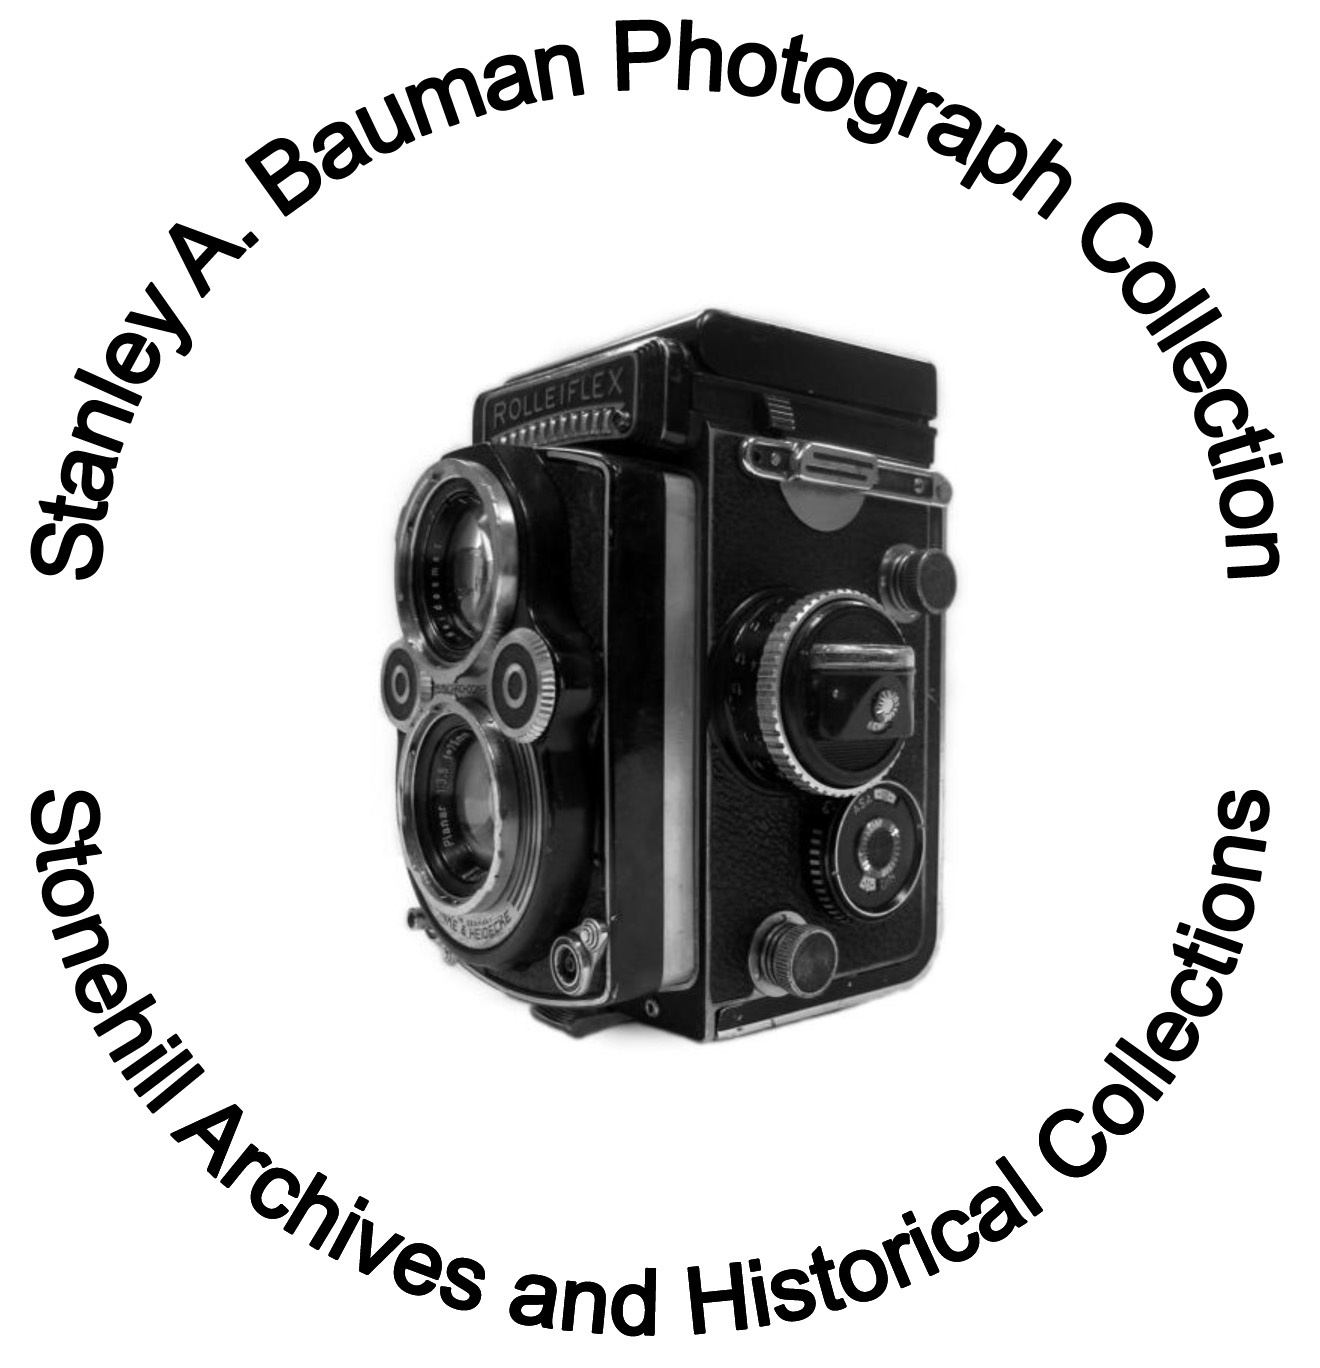 Stanley A. Bauman Photograph Collection